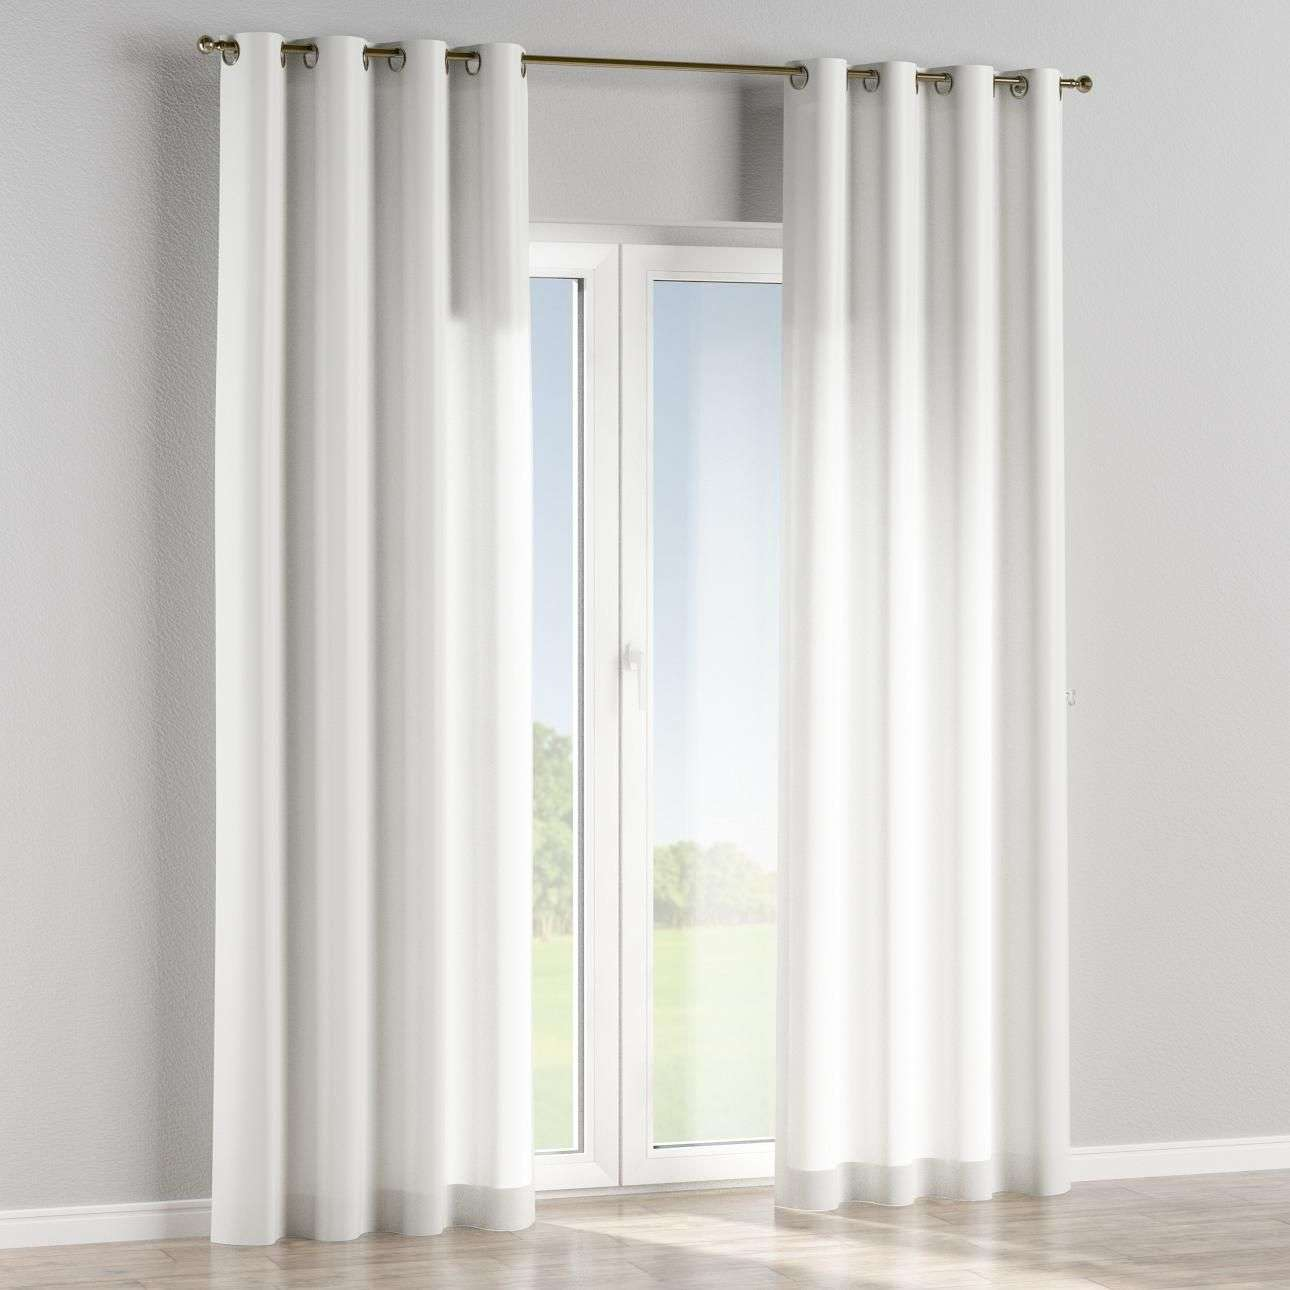 Eyelet lined curtains in collection Ashley, fabric: 137-47